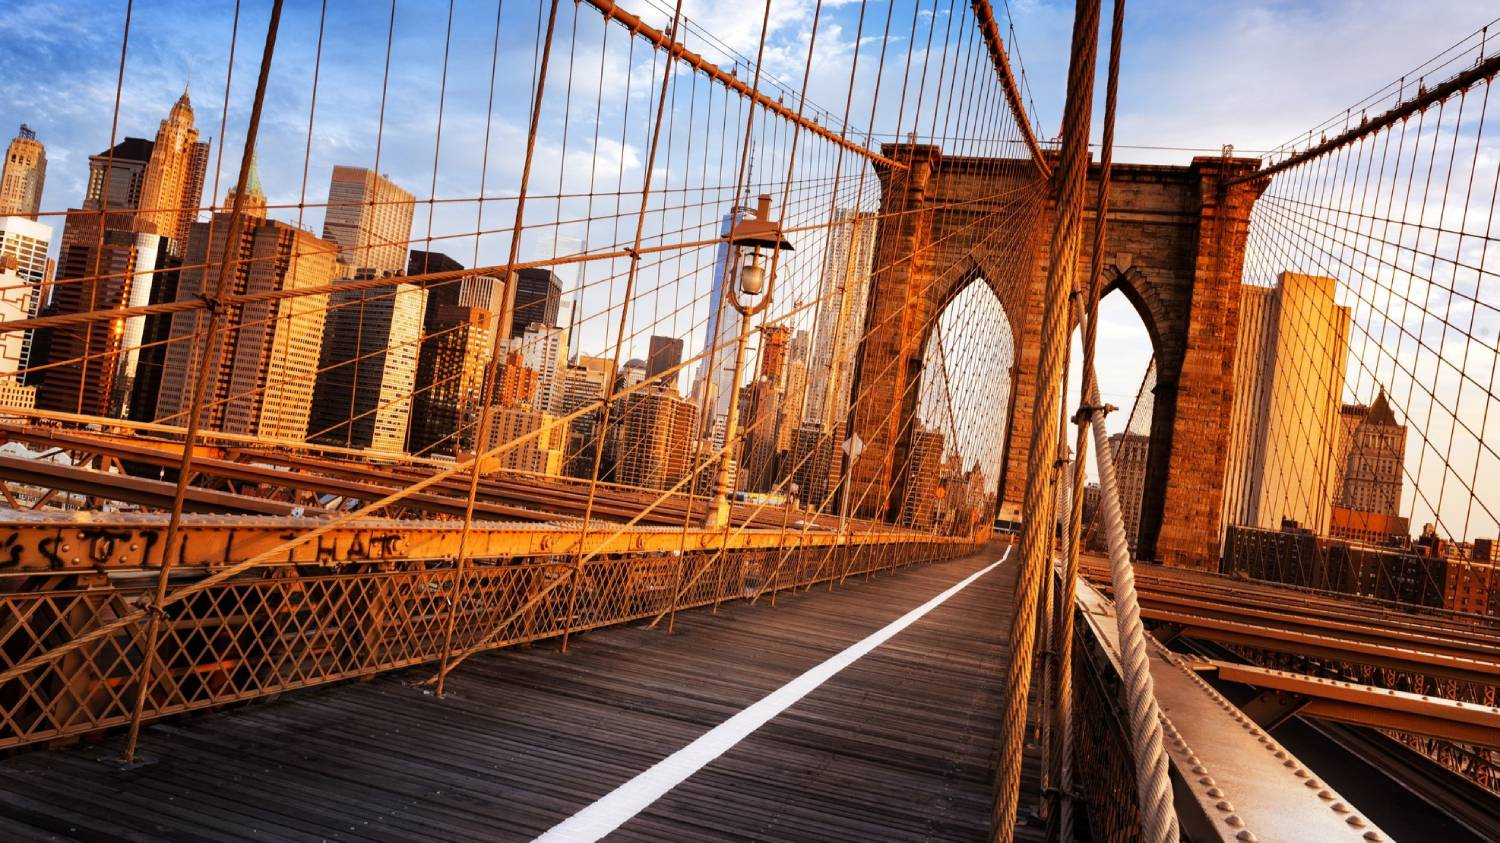 Brooklyn - Things To Do In New York City